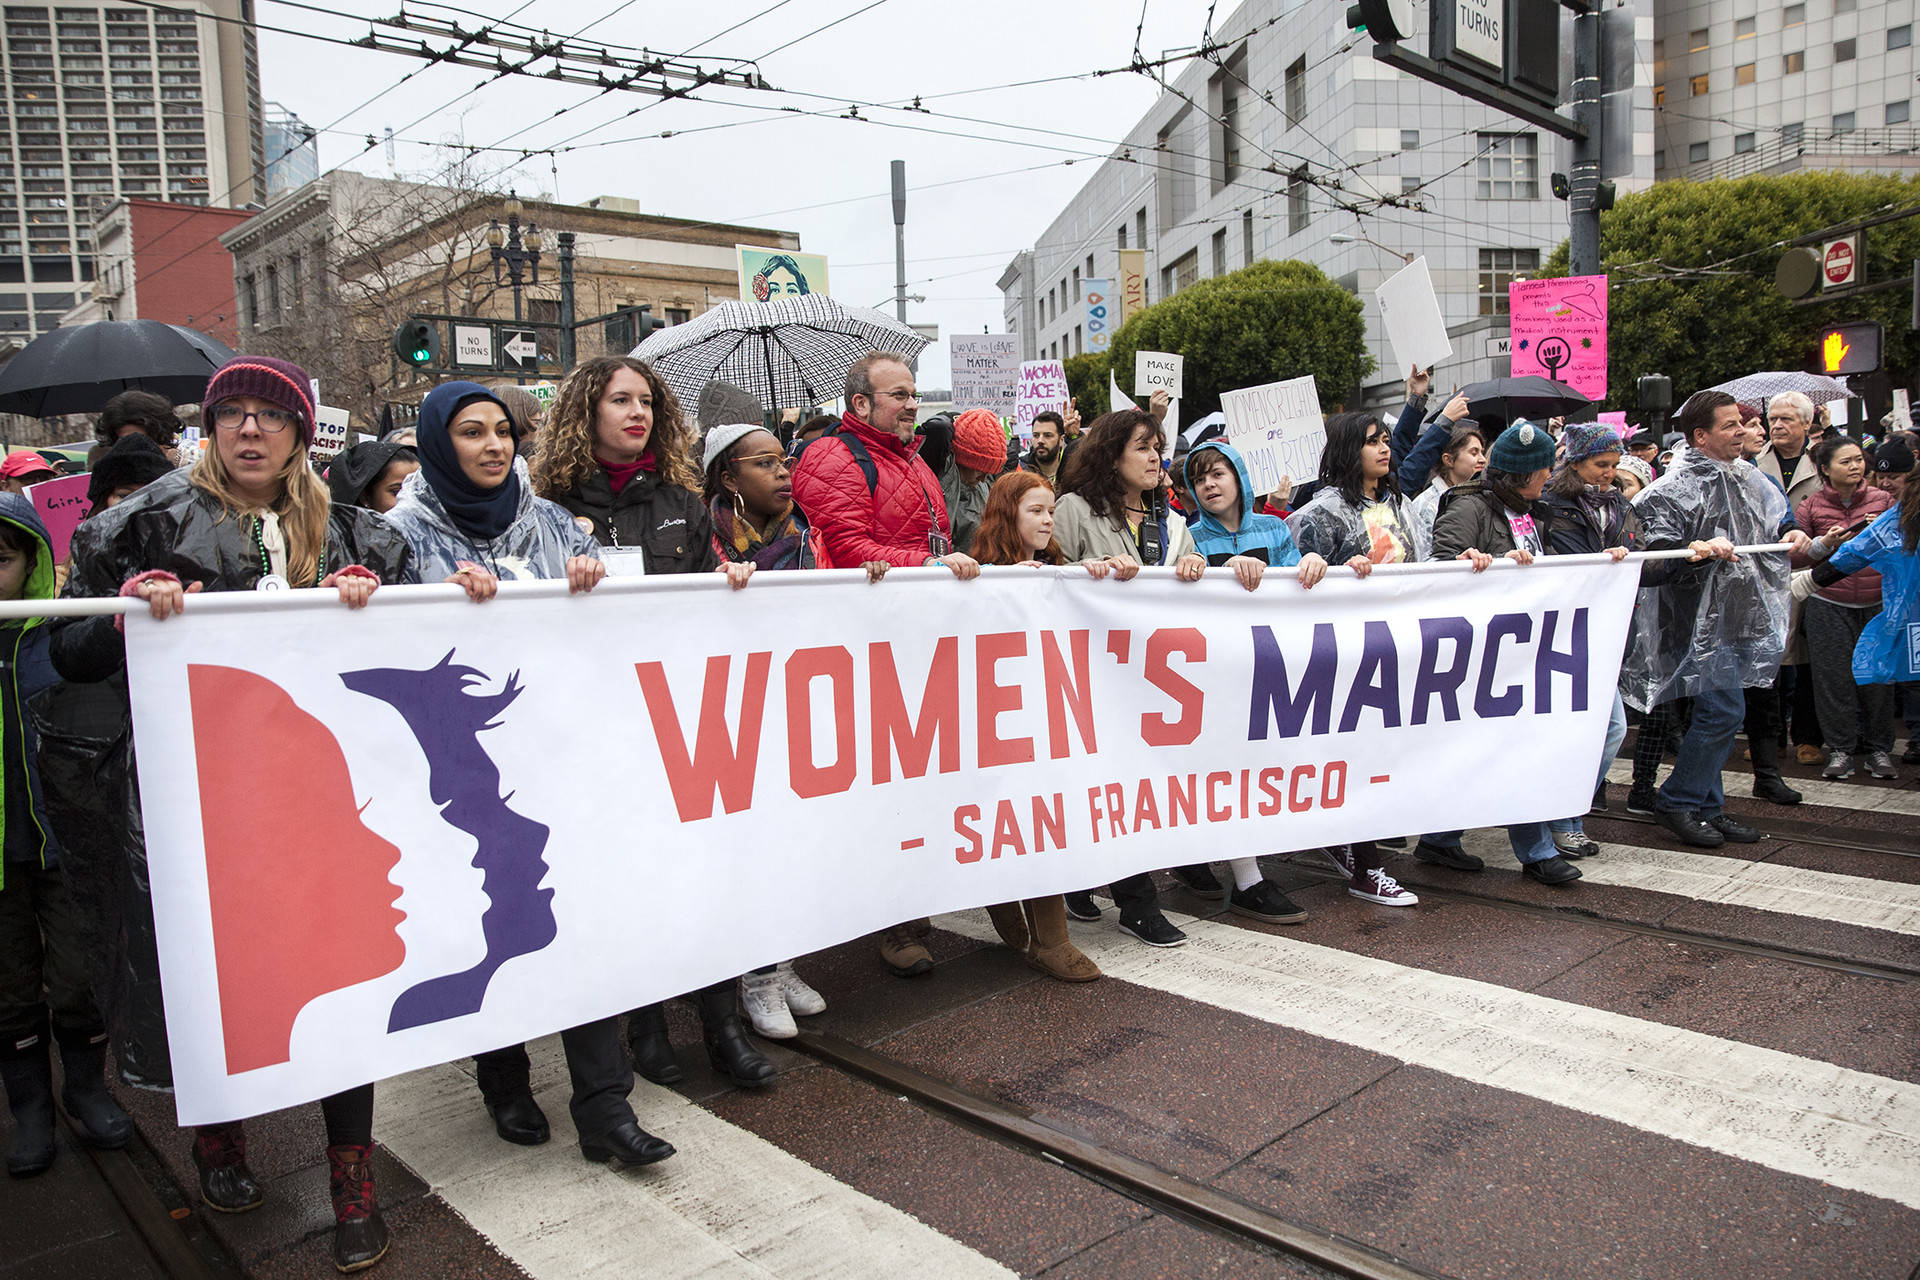 San Francisco's Women's March began at the Civic Center Plaza in San Francisco on Jan. 21, 2017. Even with looming clouds and rain thousands joined in the march down Market St. Brittany Hosea-Small/KQED